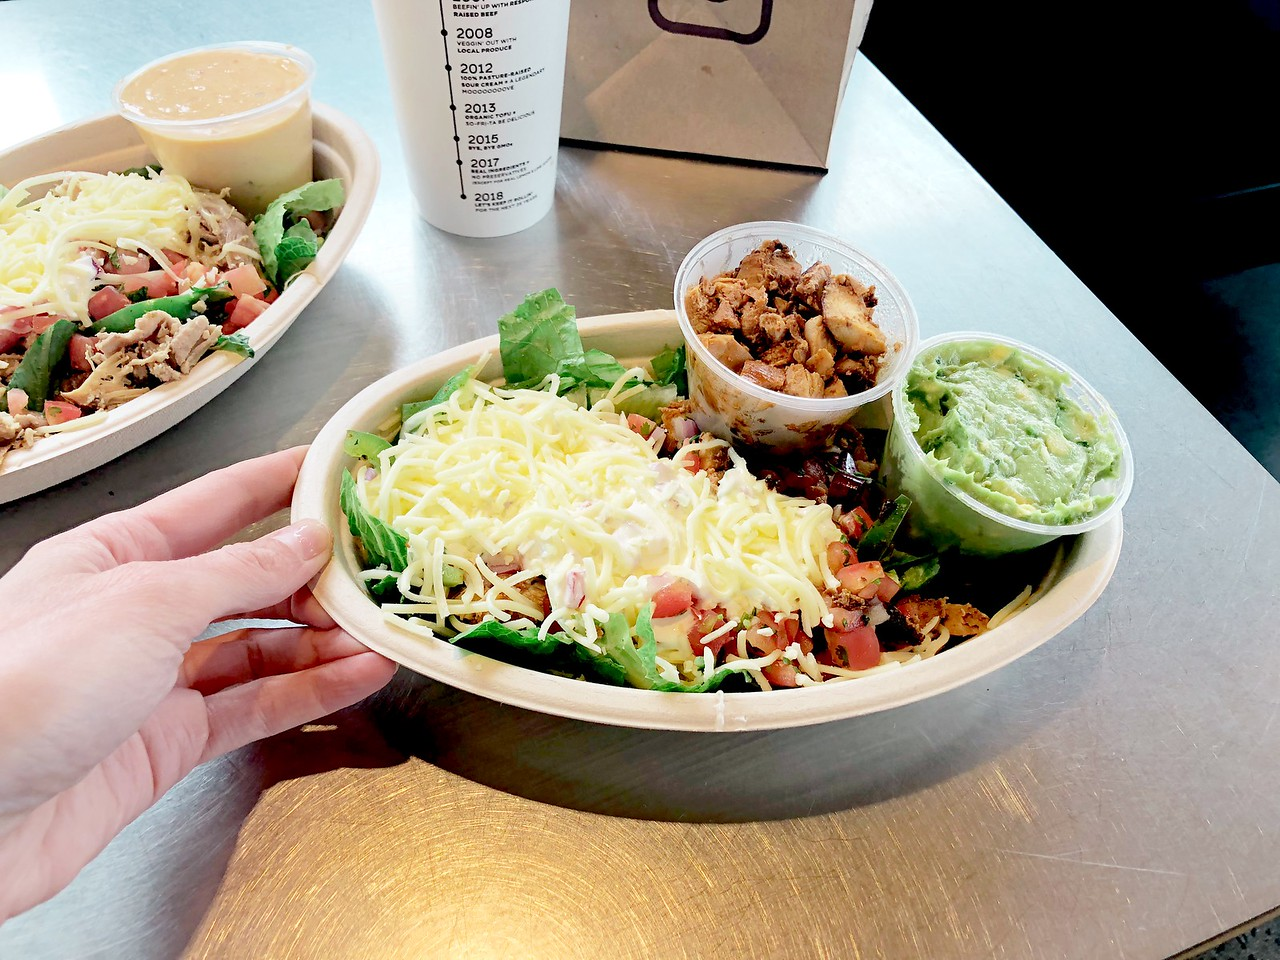 Halloween freebies and deals – get free food at chipotle